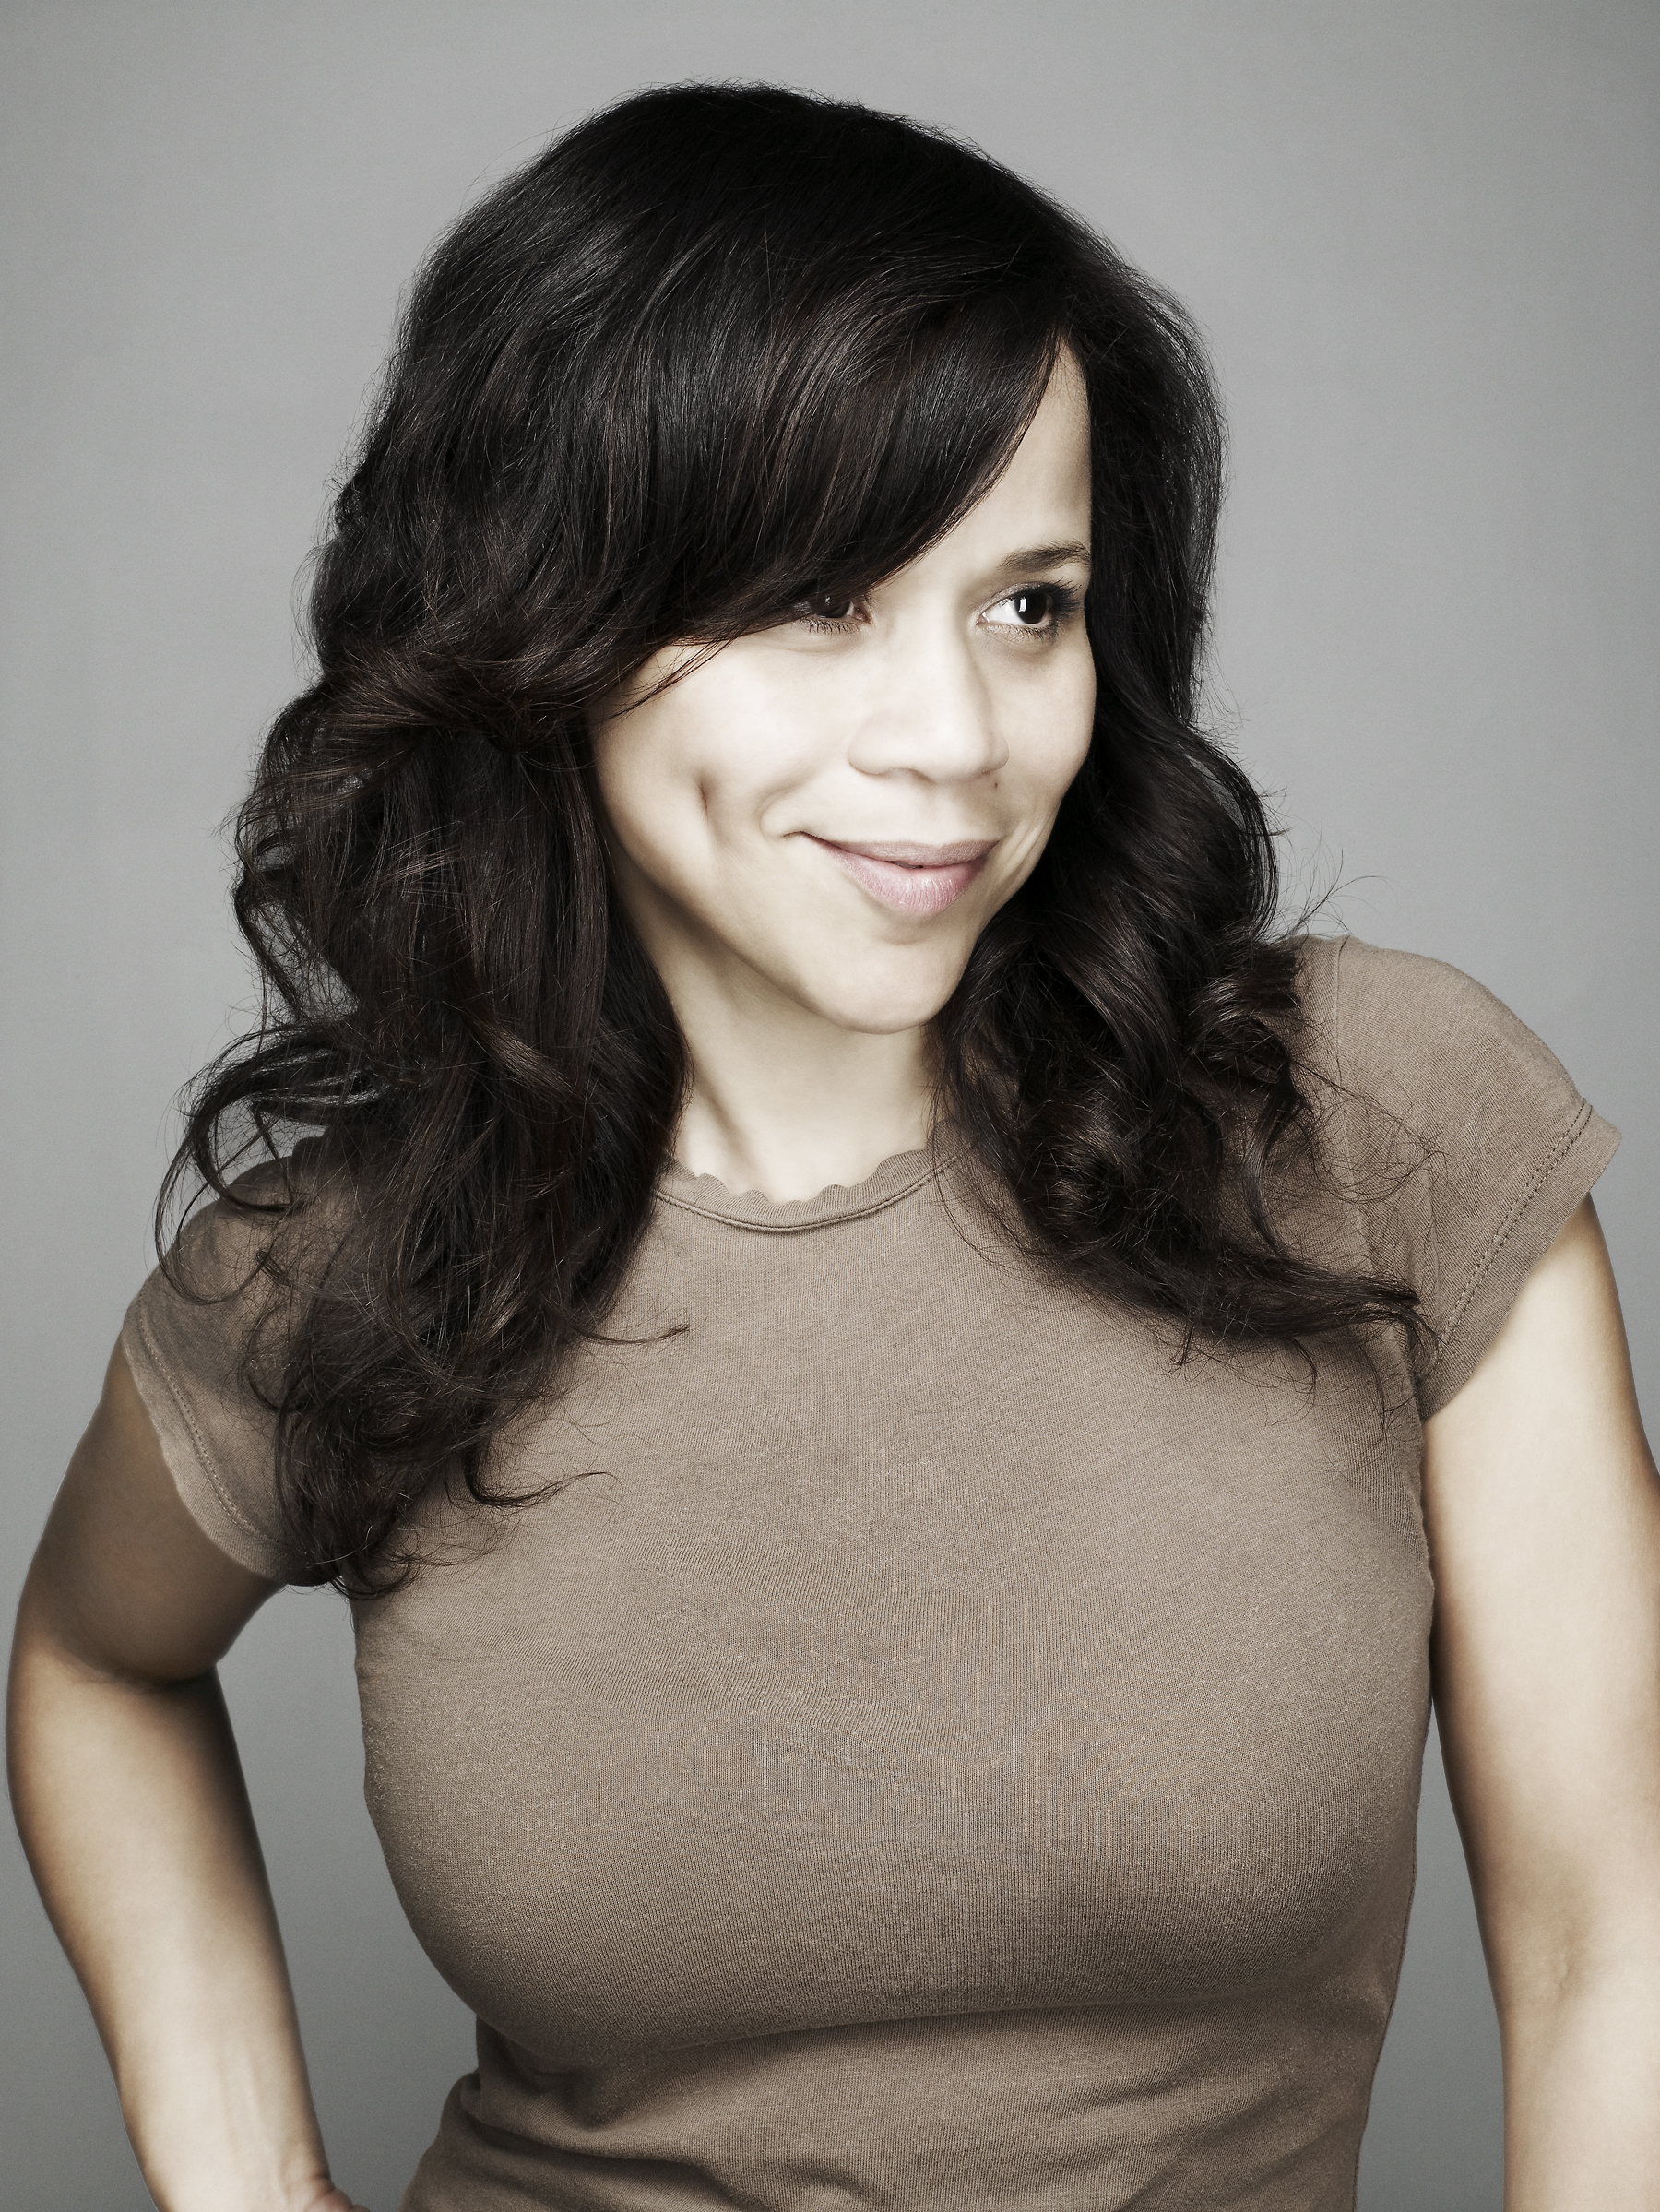 Caption: Rosie Perez